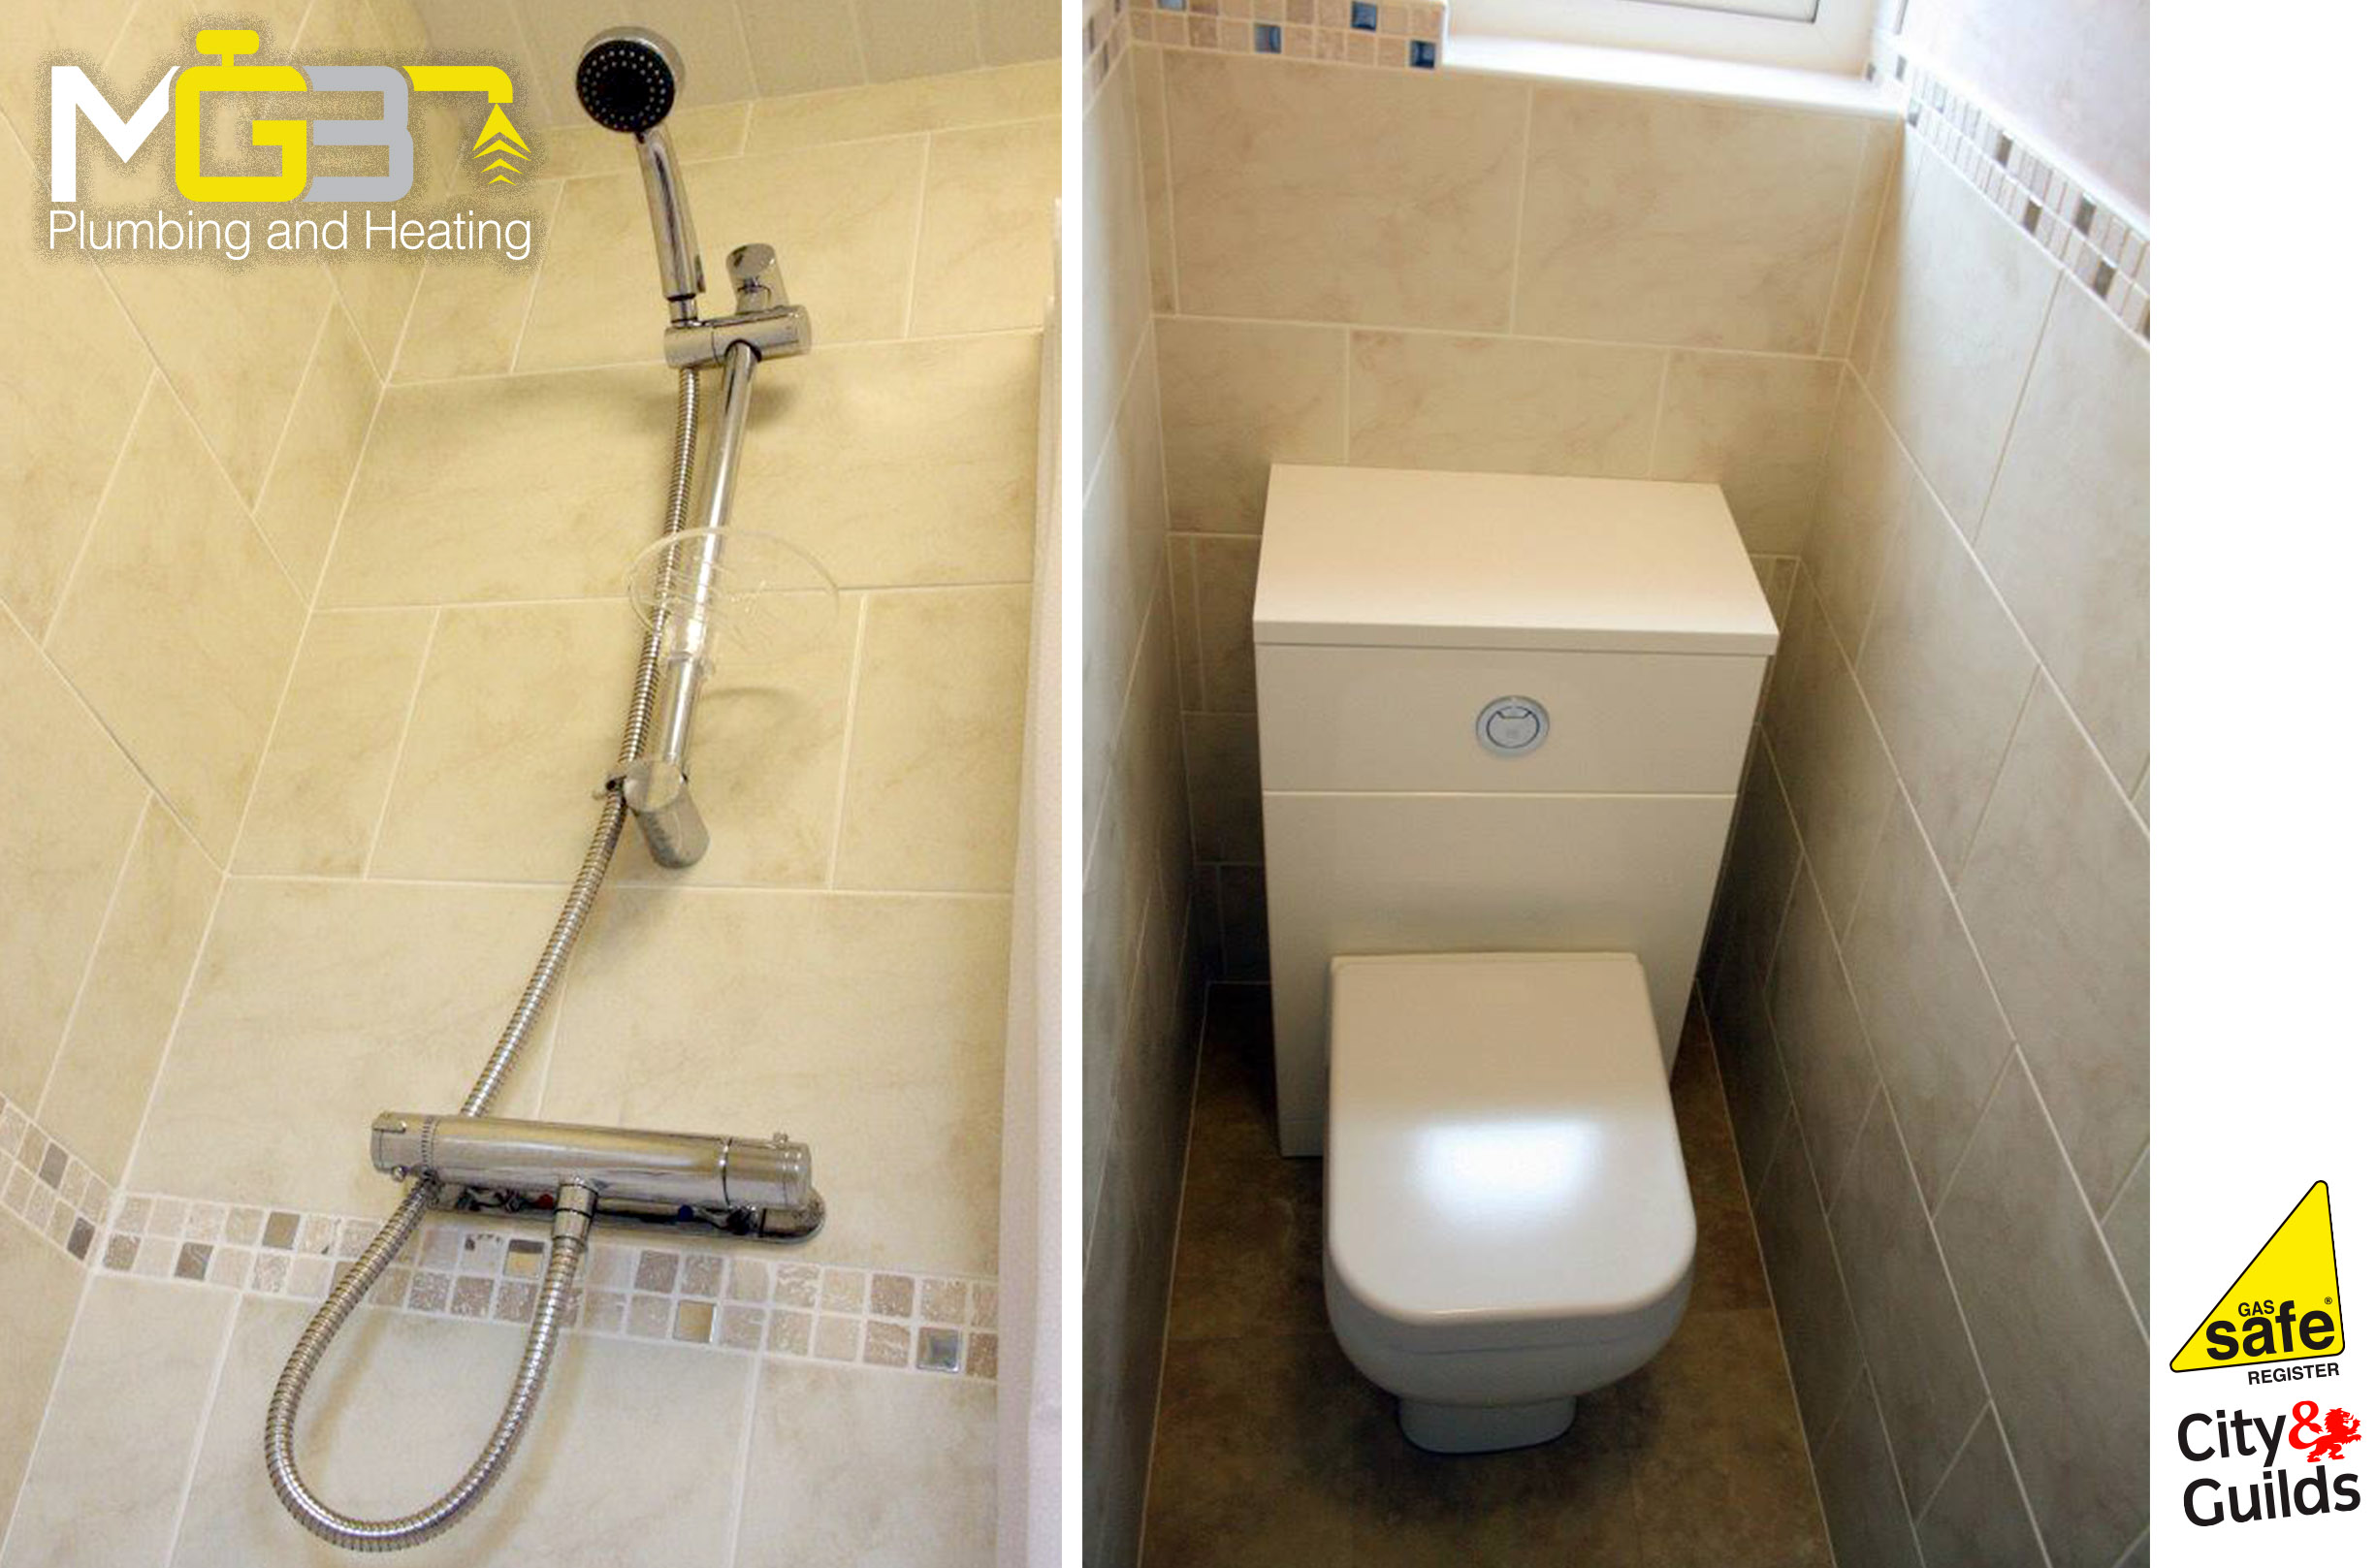 Bathroom Image Fitted by MGBPlumbing and Heating